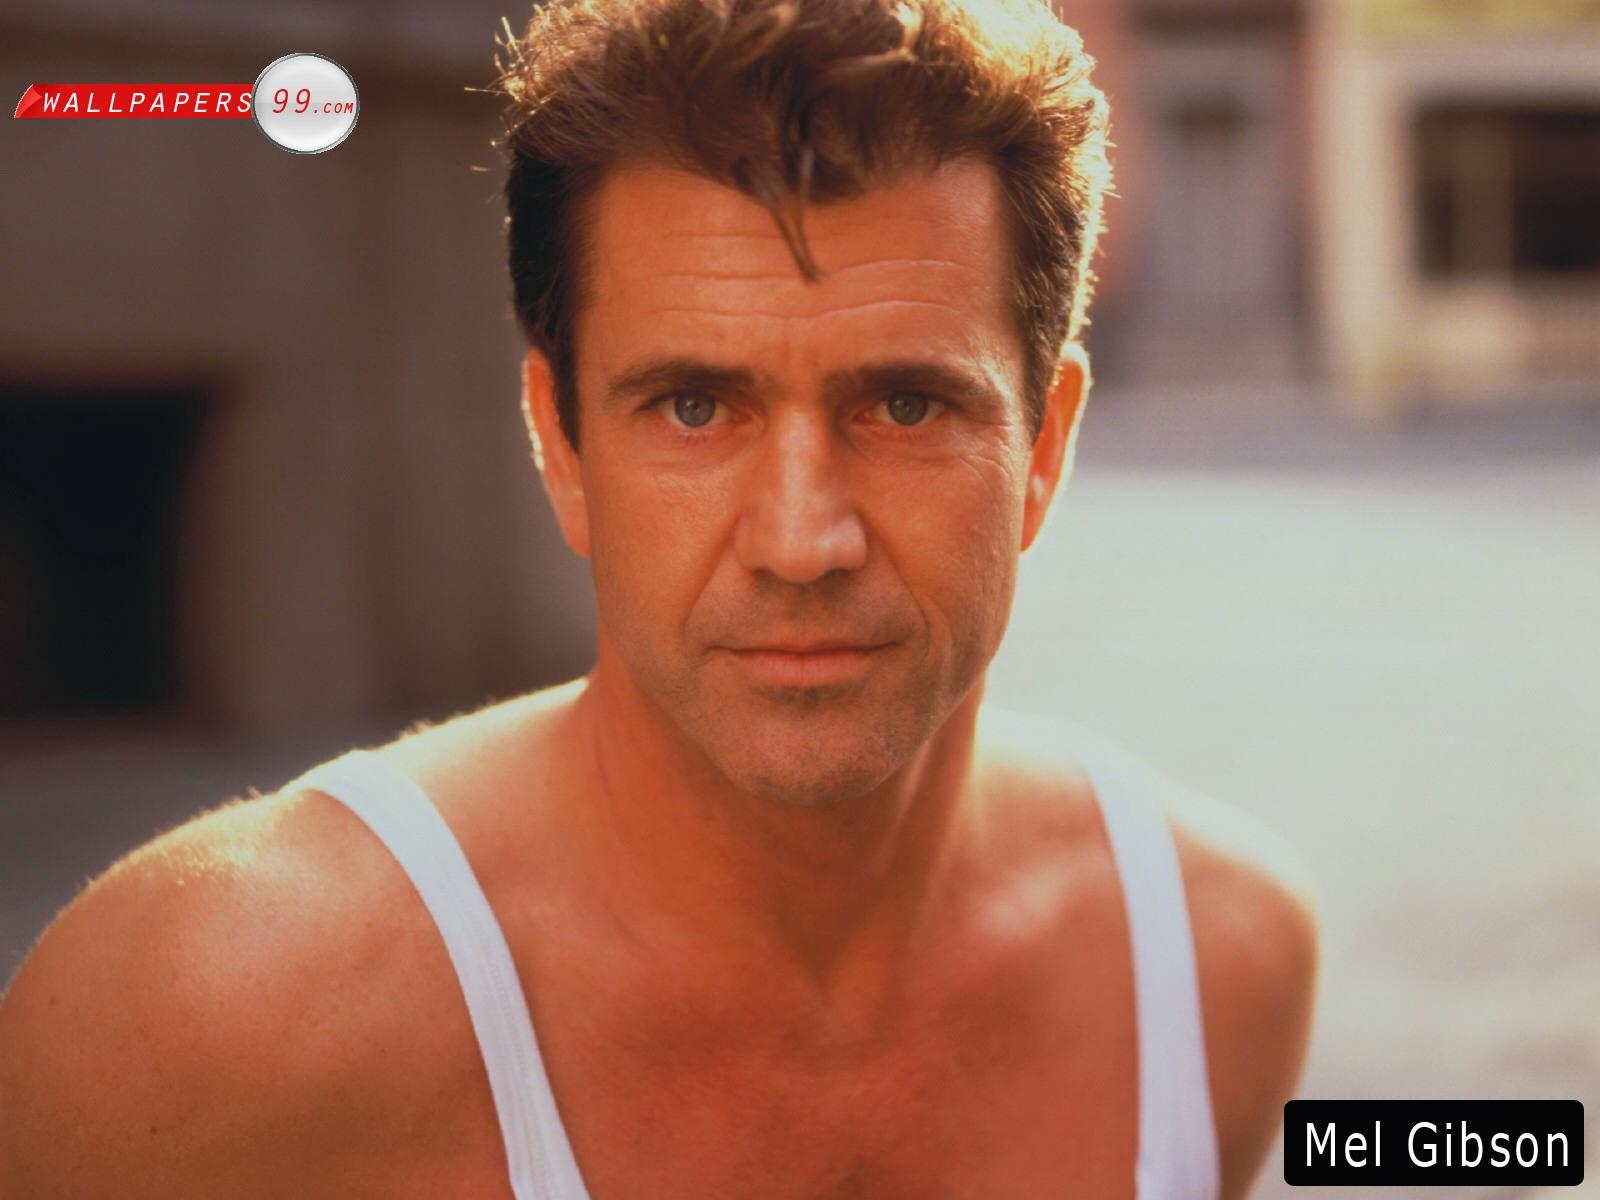 Mel Gibson 1600x1200 23158 Wallpapers